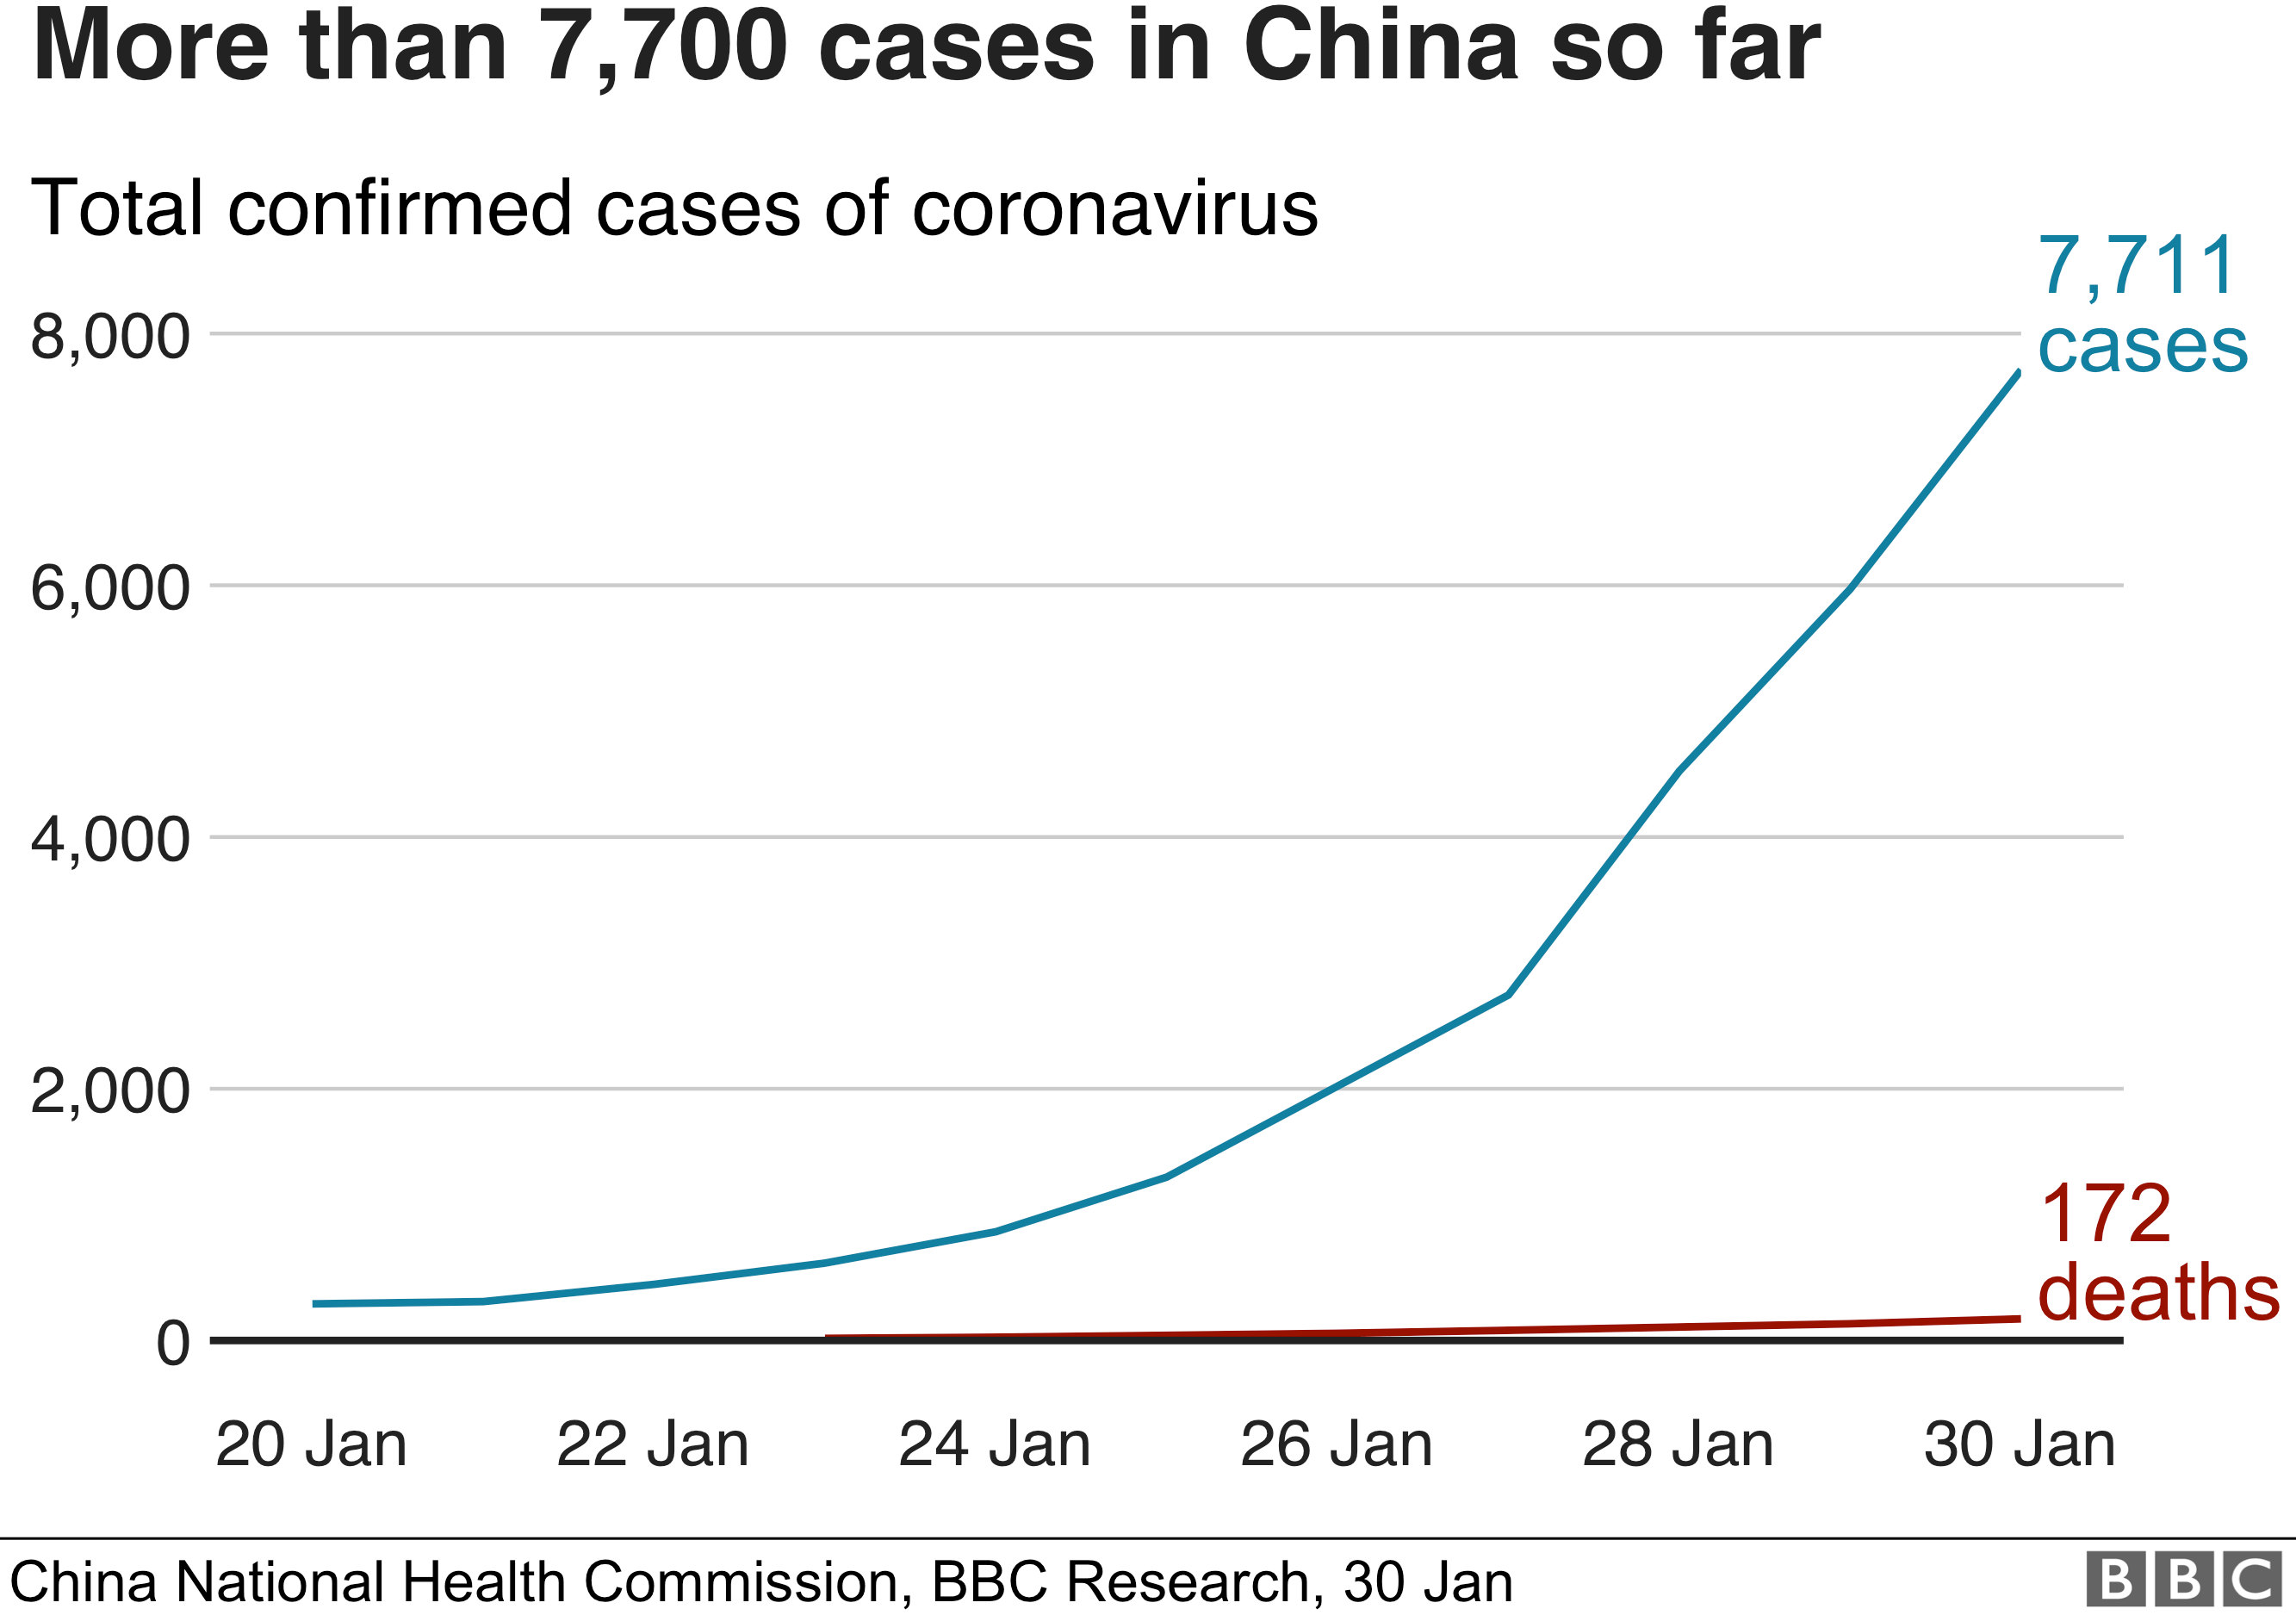 Chart showing the rise in the number of confirmed cases of coronavirus